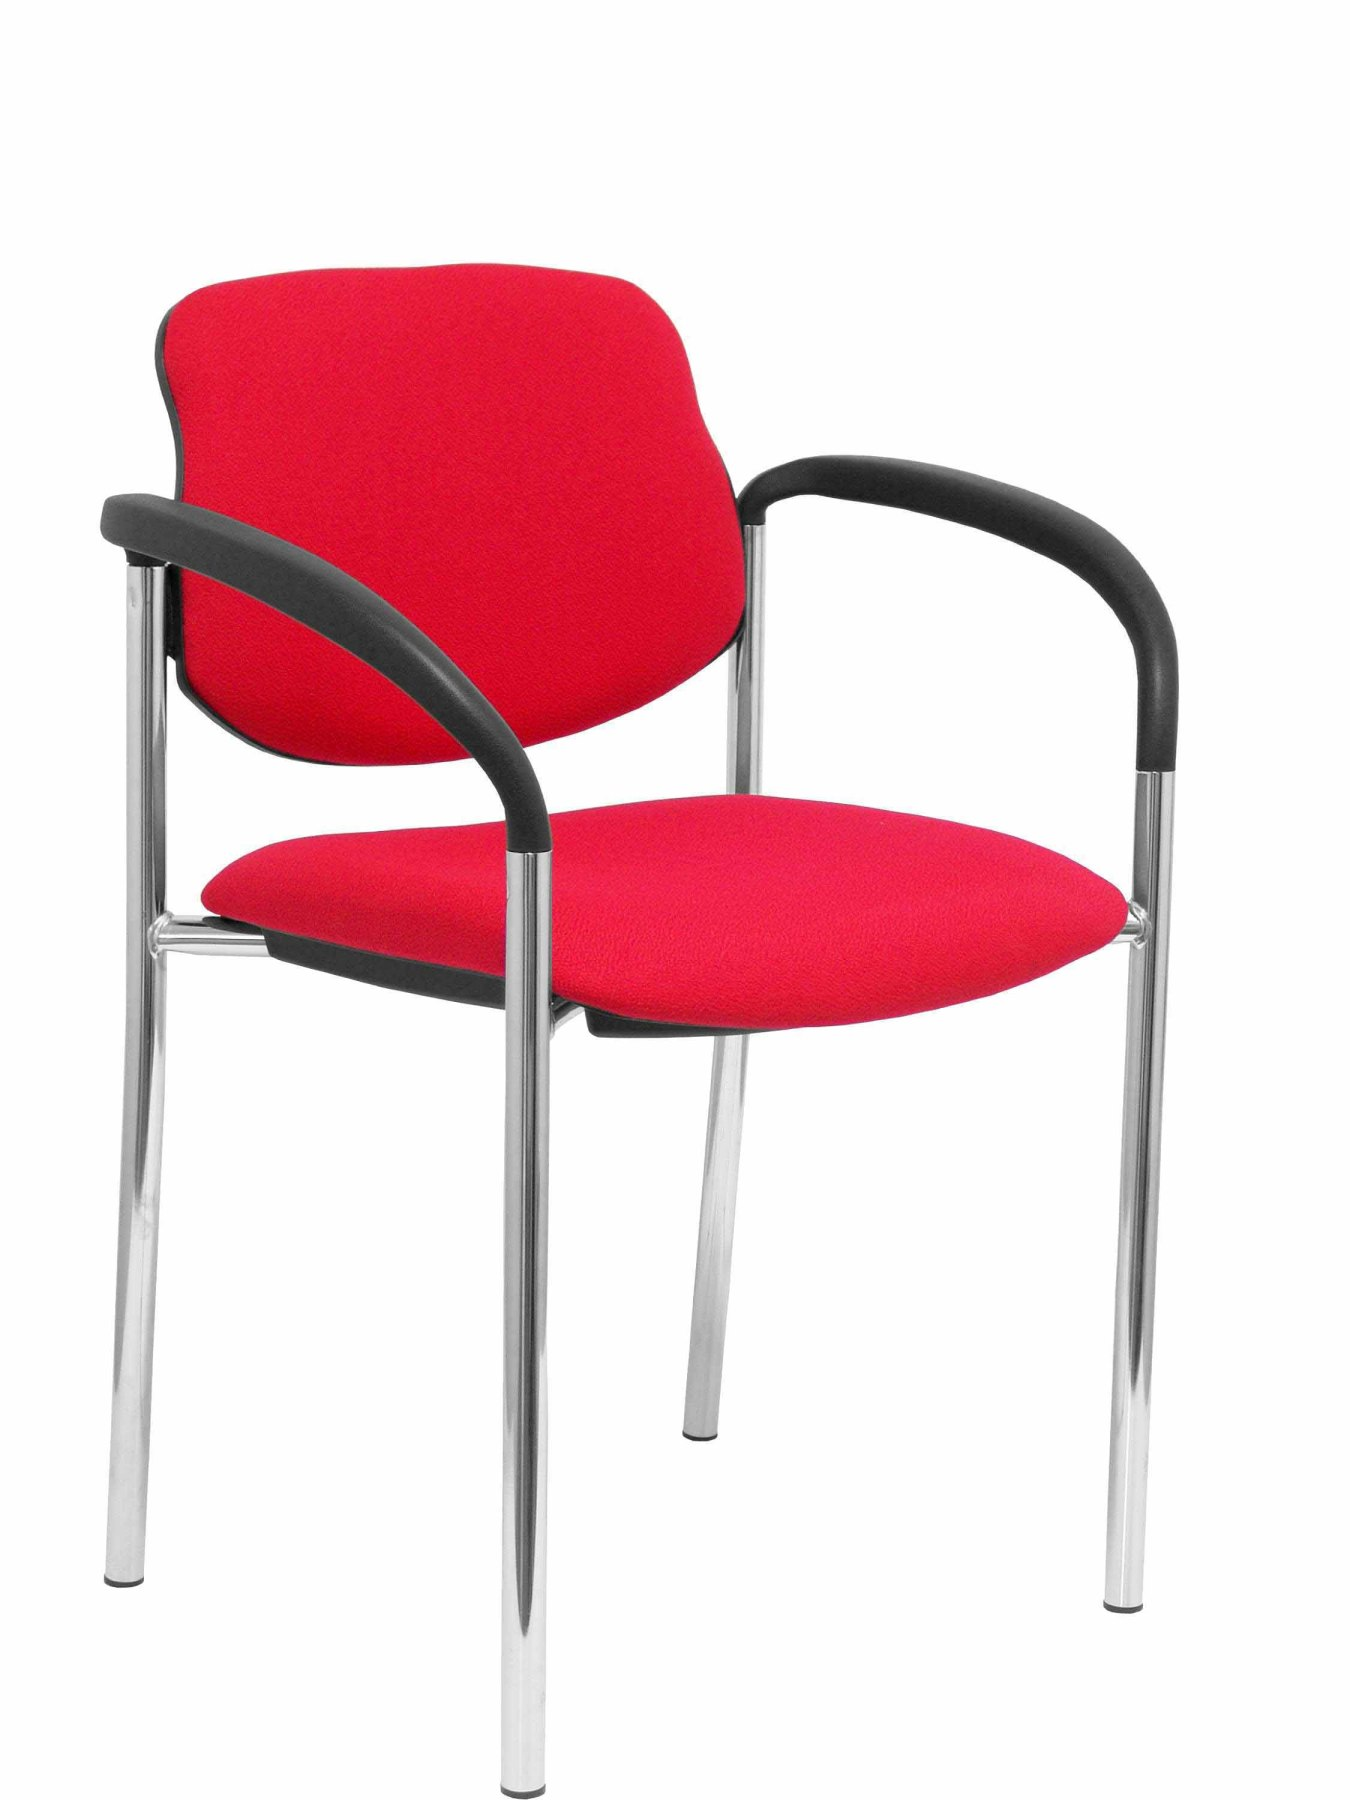 Confident Chair 4-leg And Estructrua Chrome Arms-Seat And Back Upholstered In Fabric BALI Network PIQ